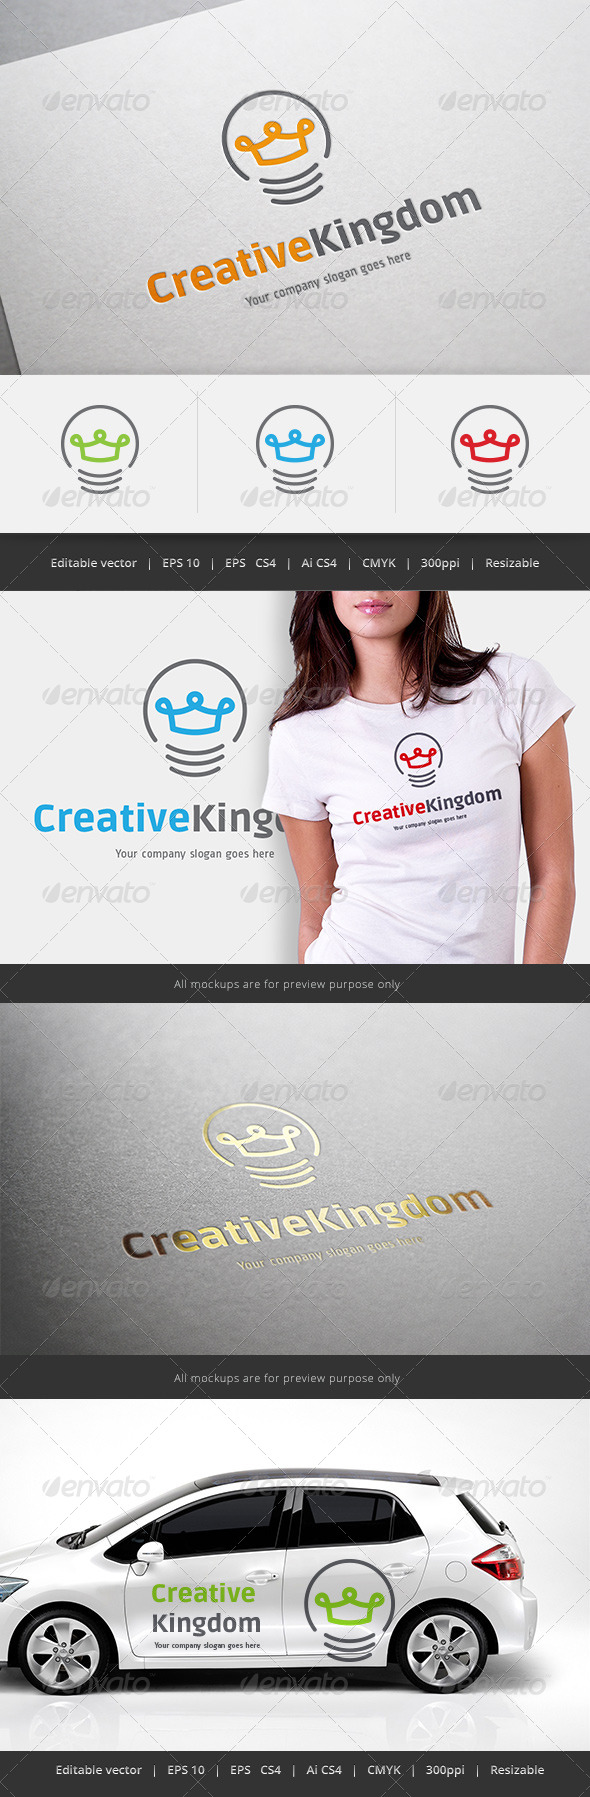 GraphicRiver Creative Kingdom Logo 5550453